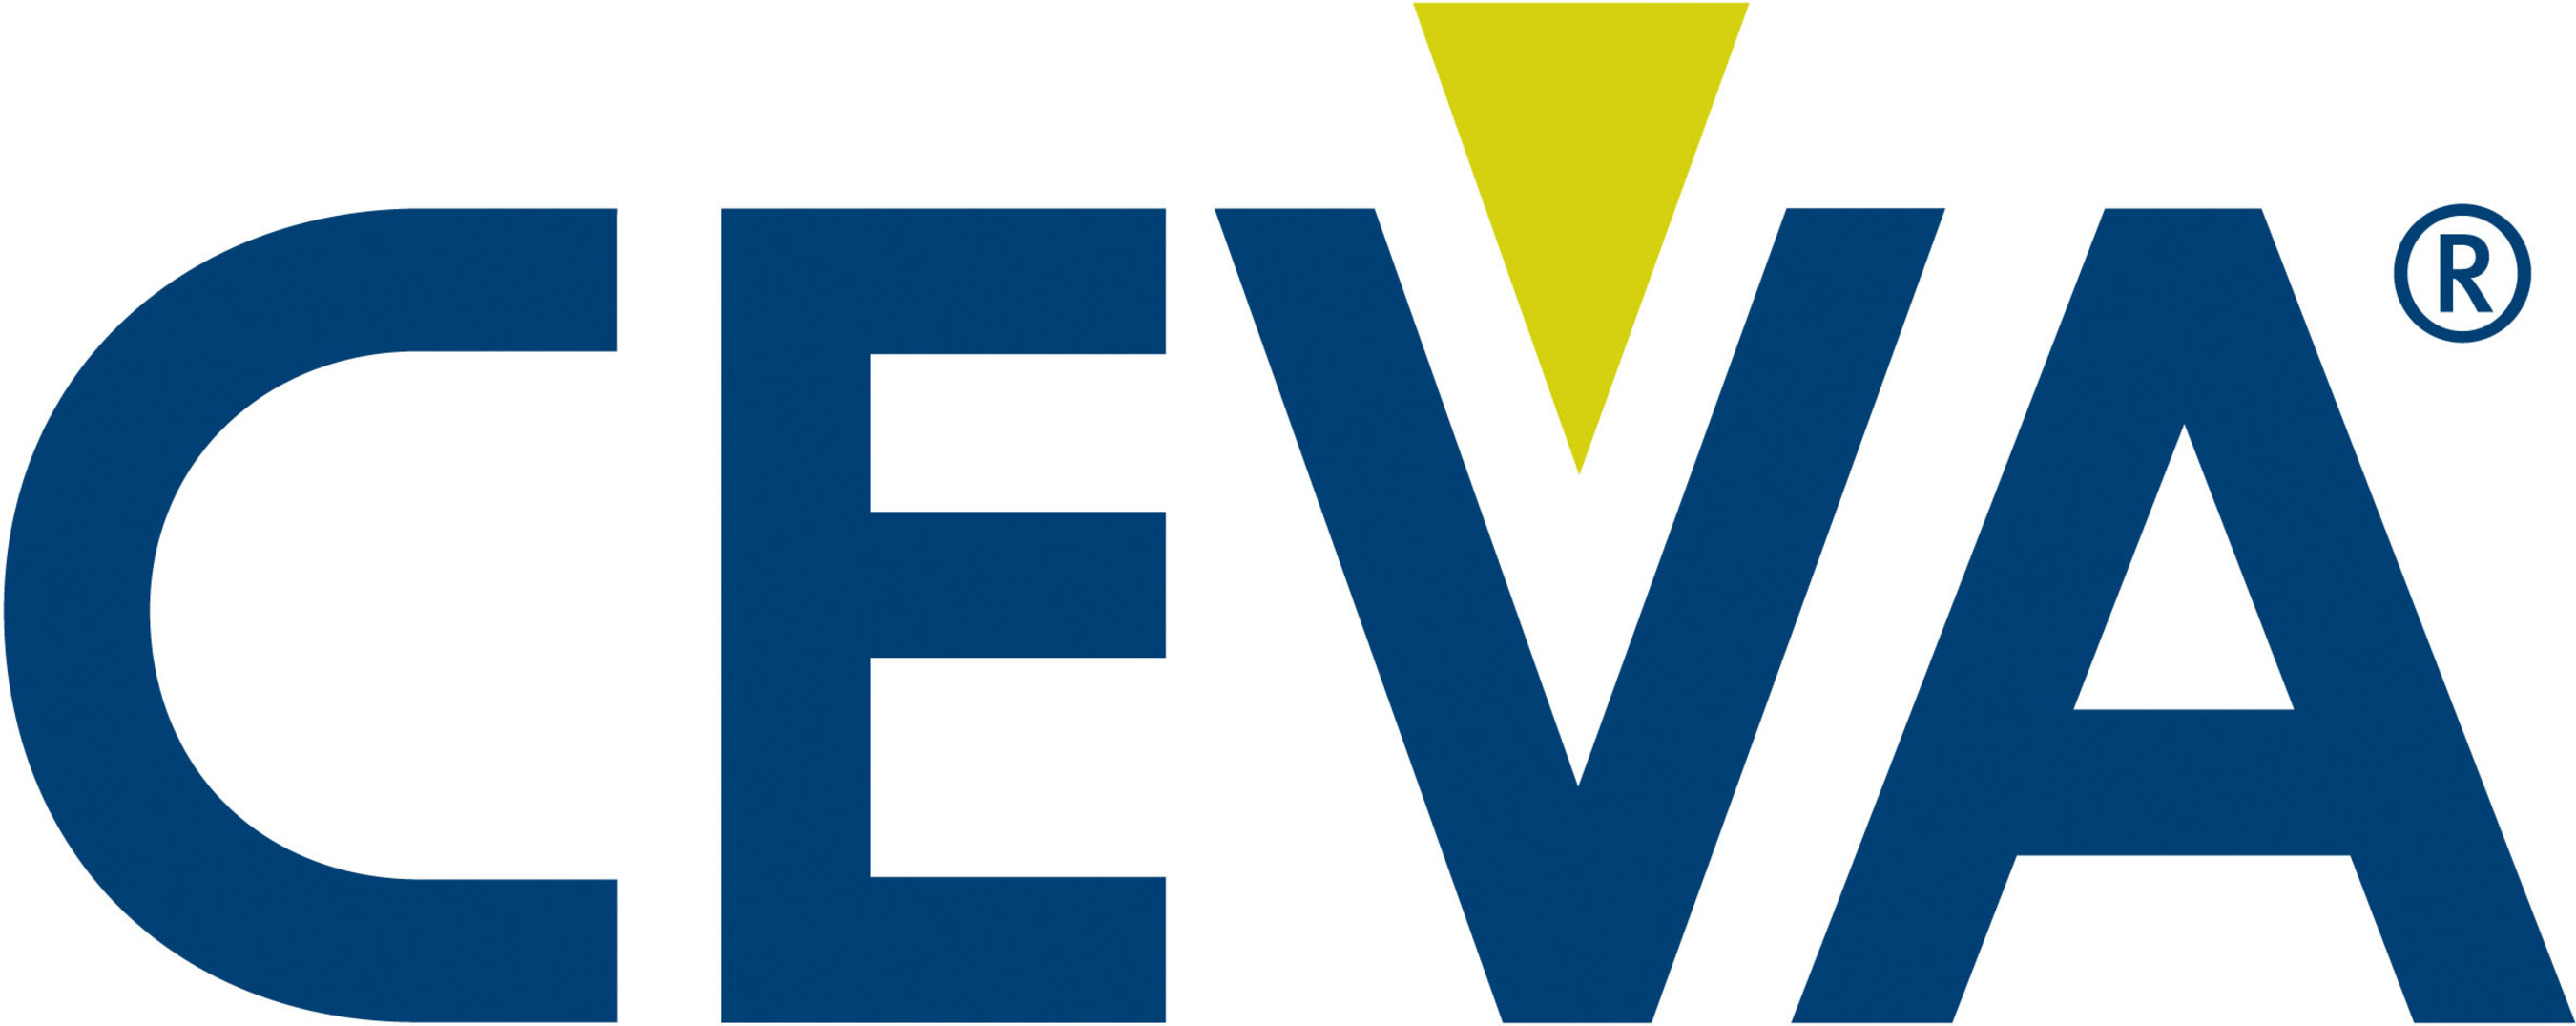 CEVA, Inc. Announces Fourth Quarter and 2015 Financial Results